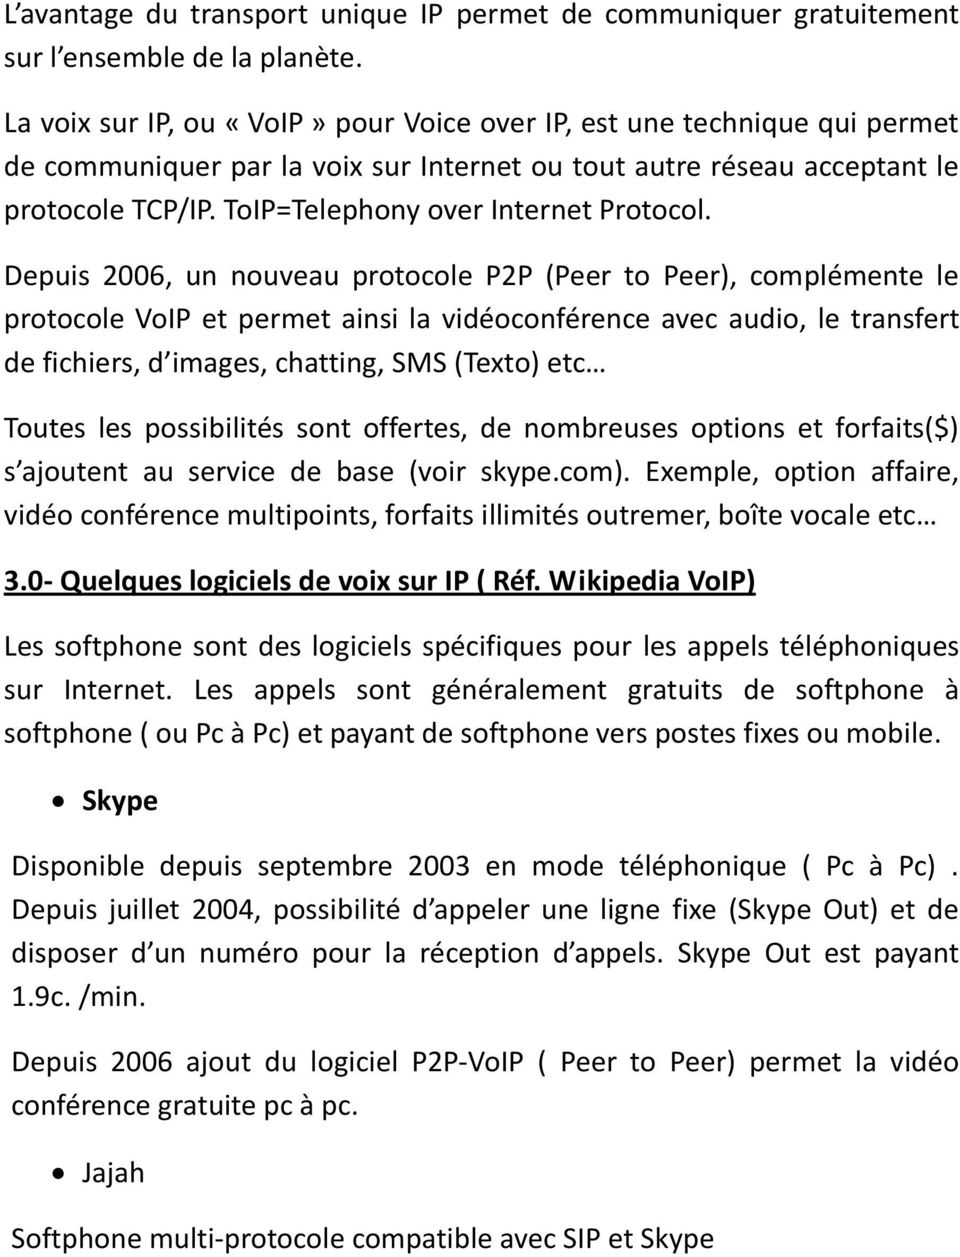 ToIP=Telephony over Internet Protocol.